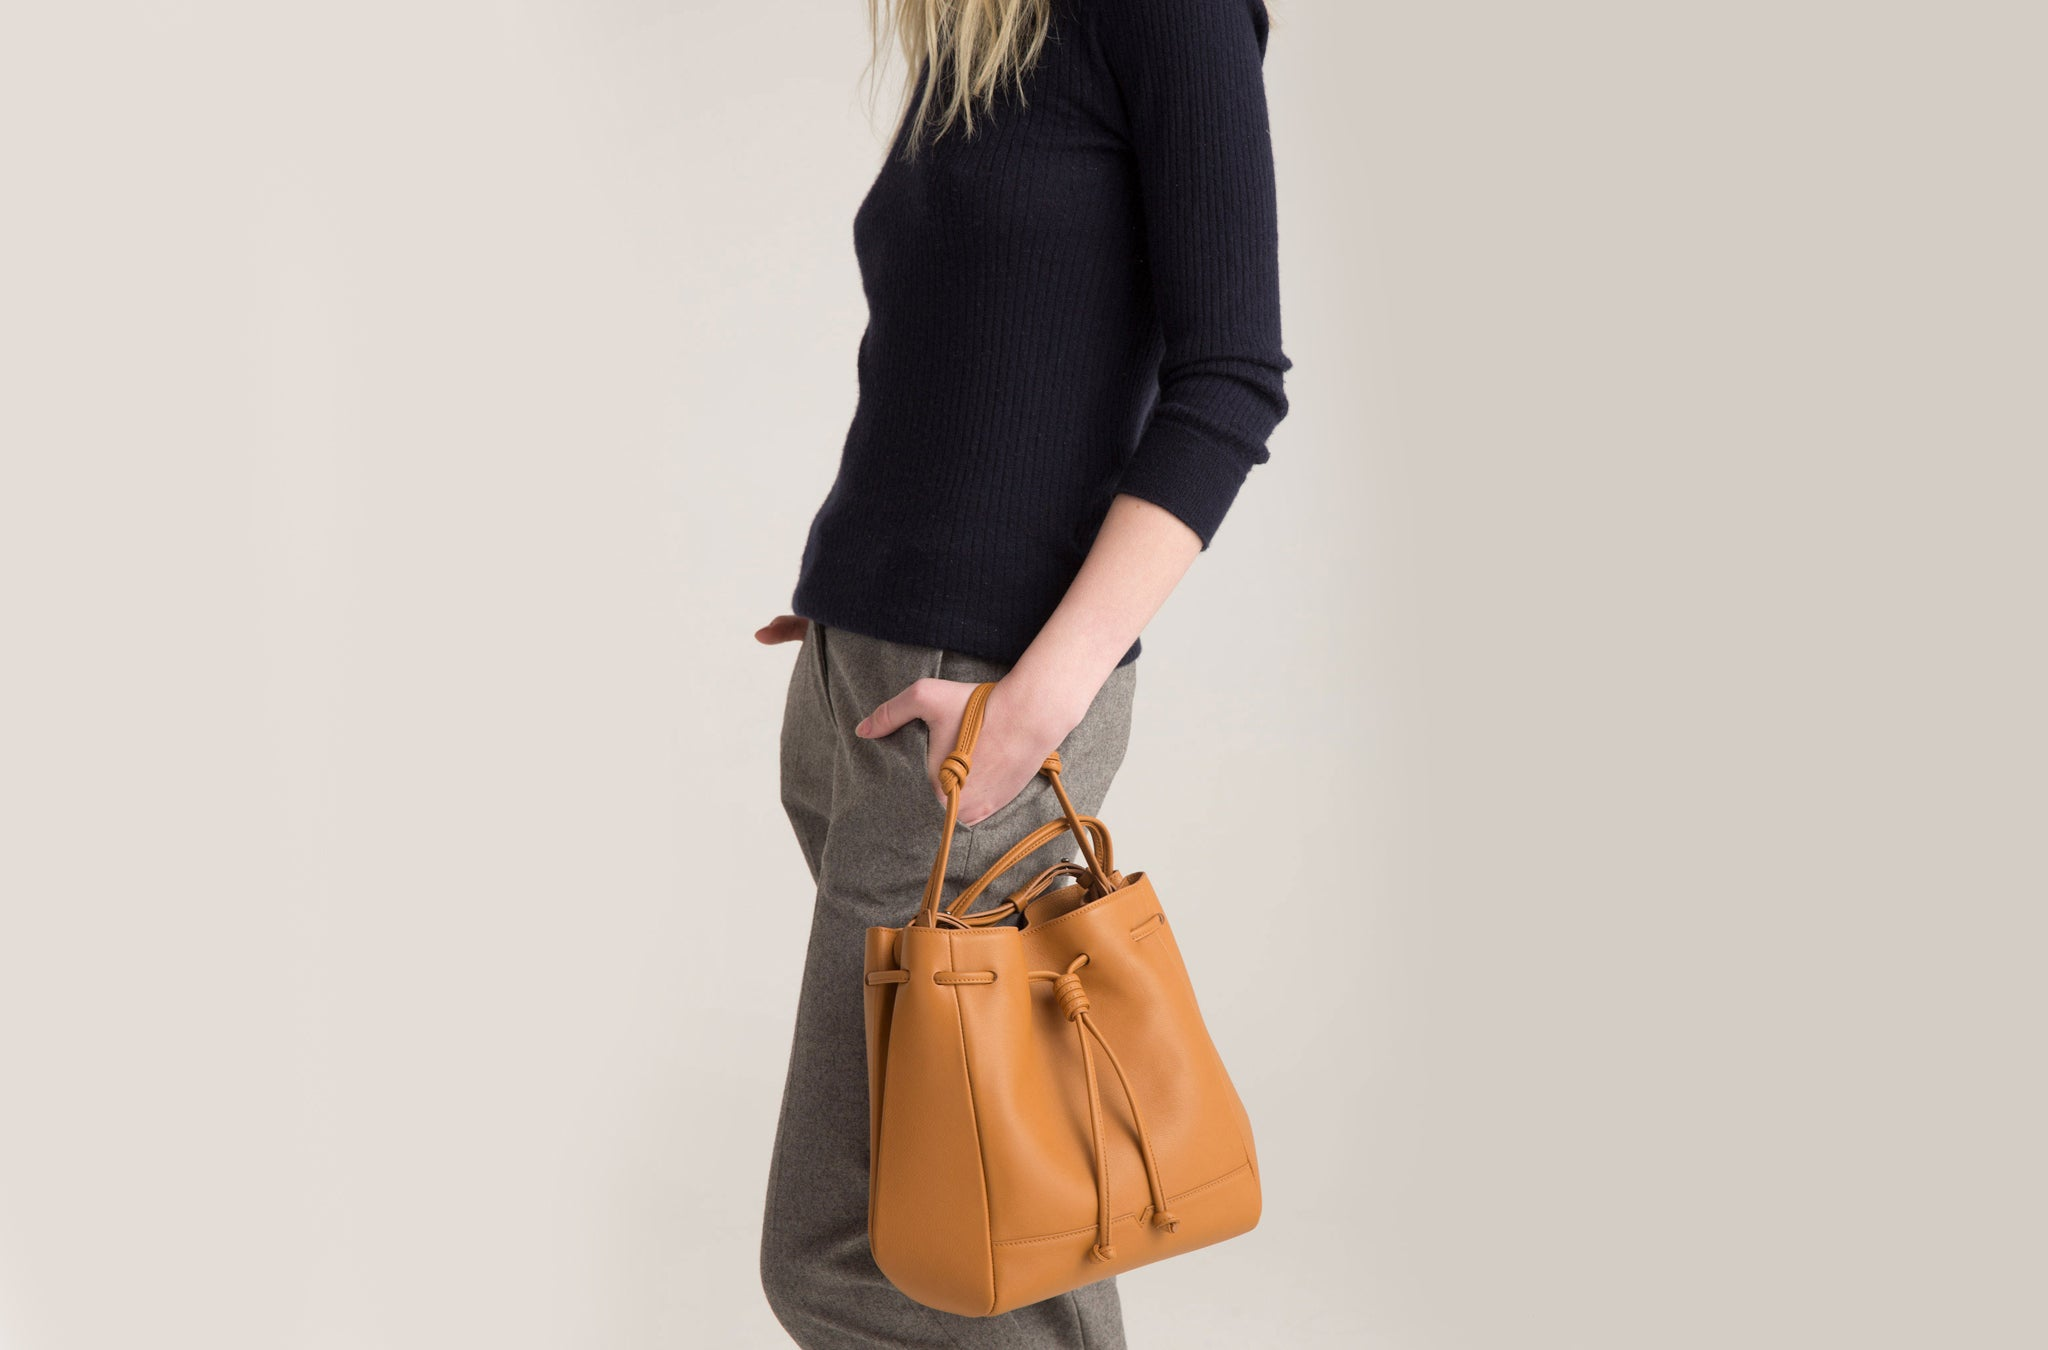 The Bucket Crossbody in Technik-Leather in Caramel